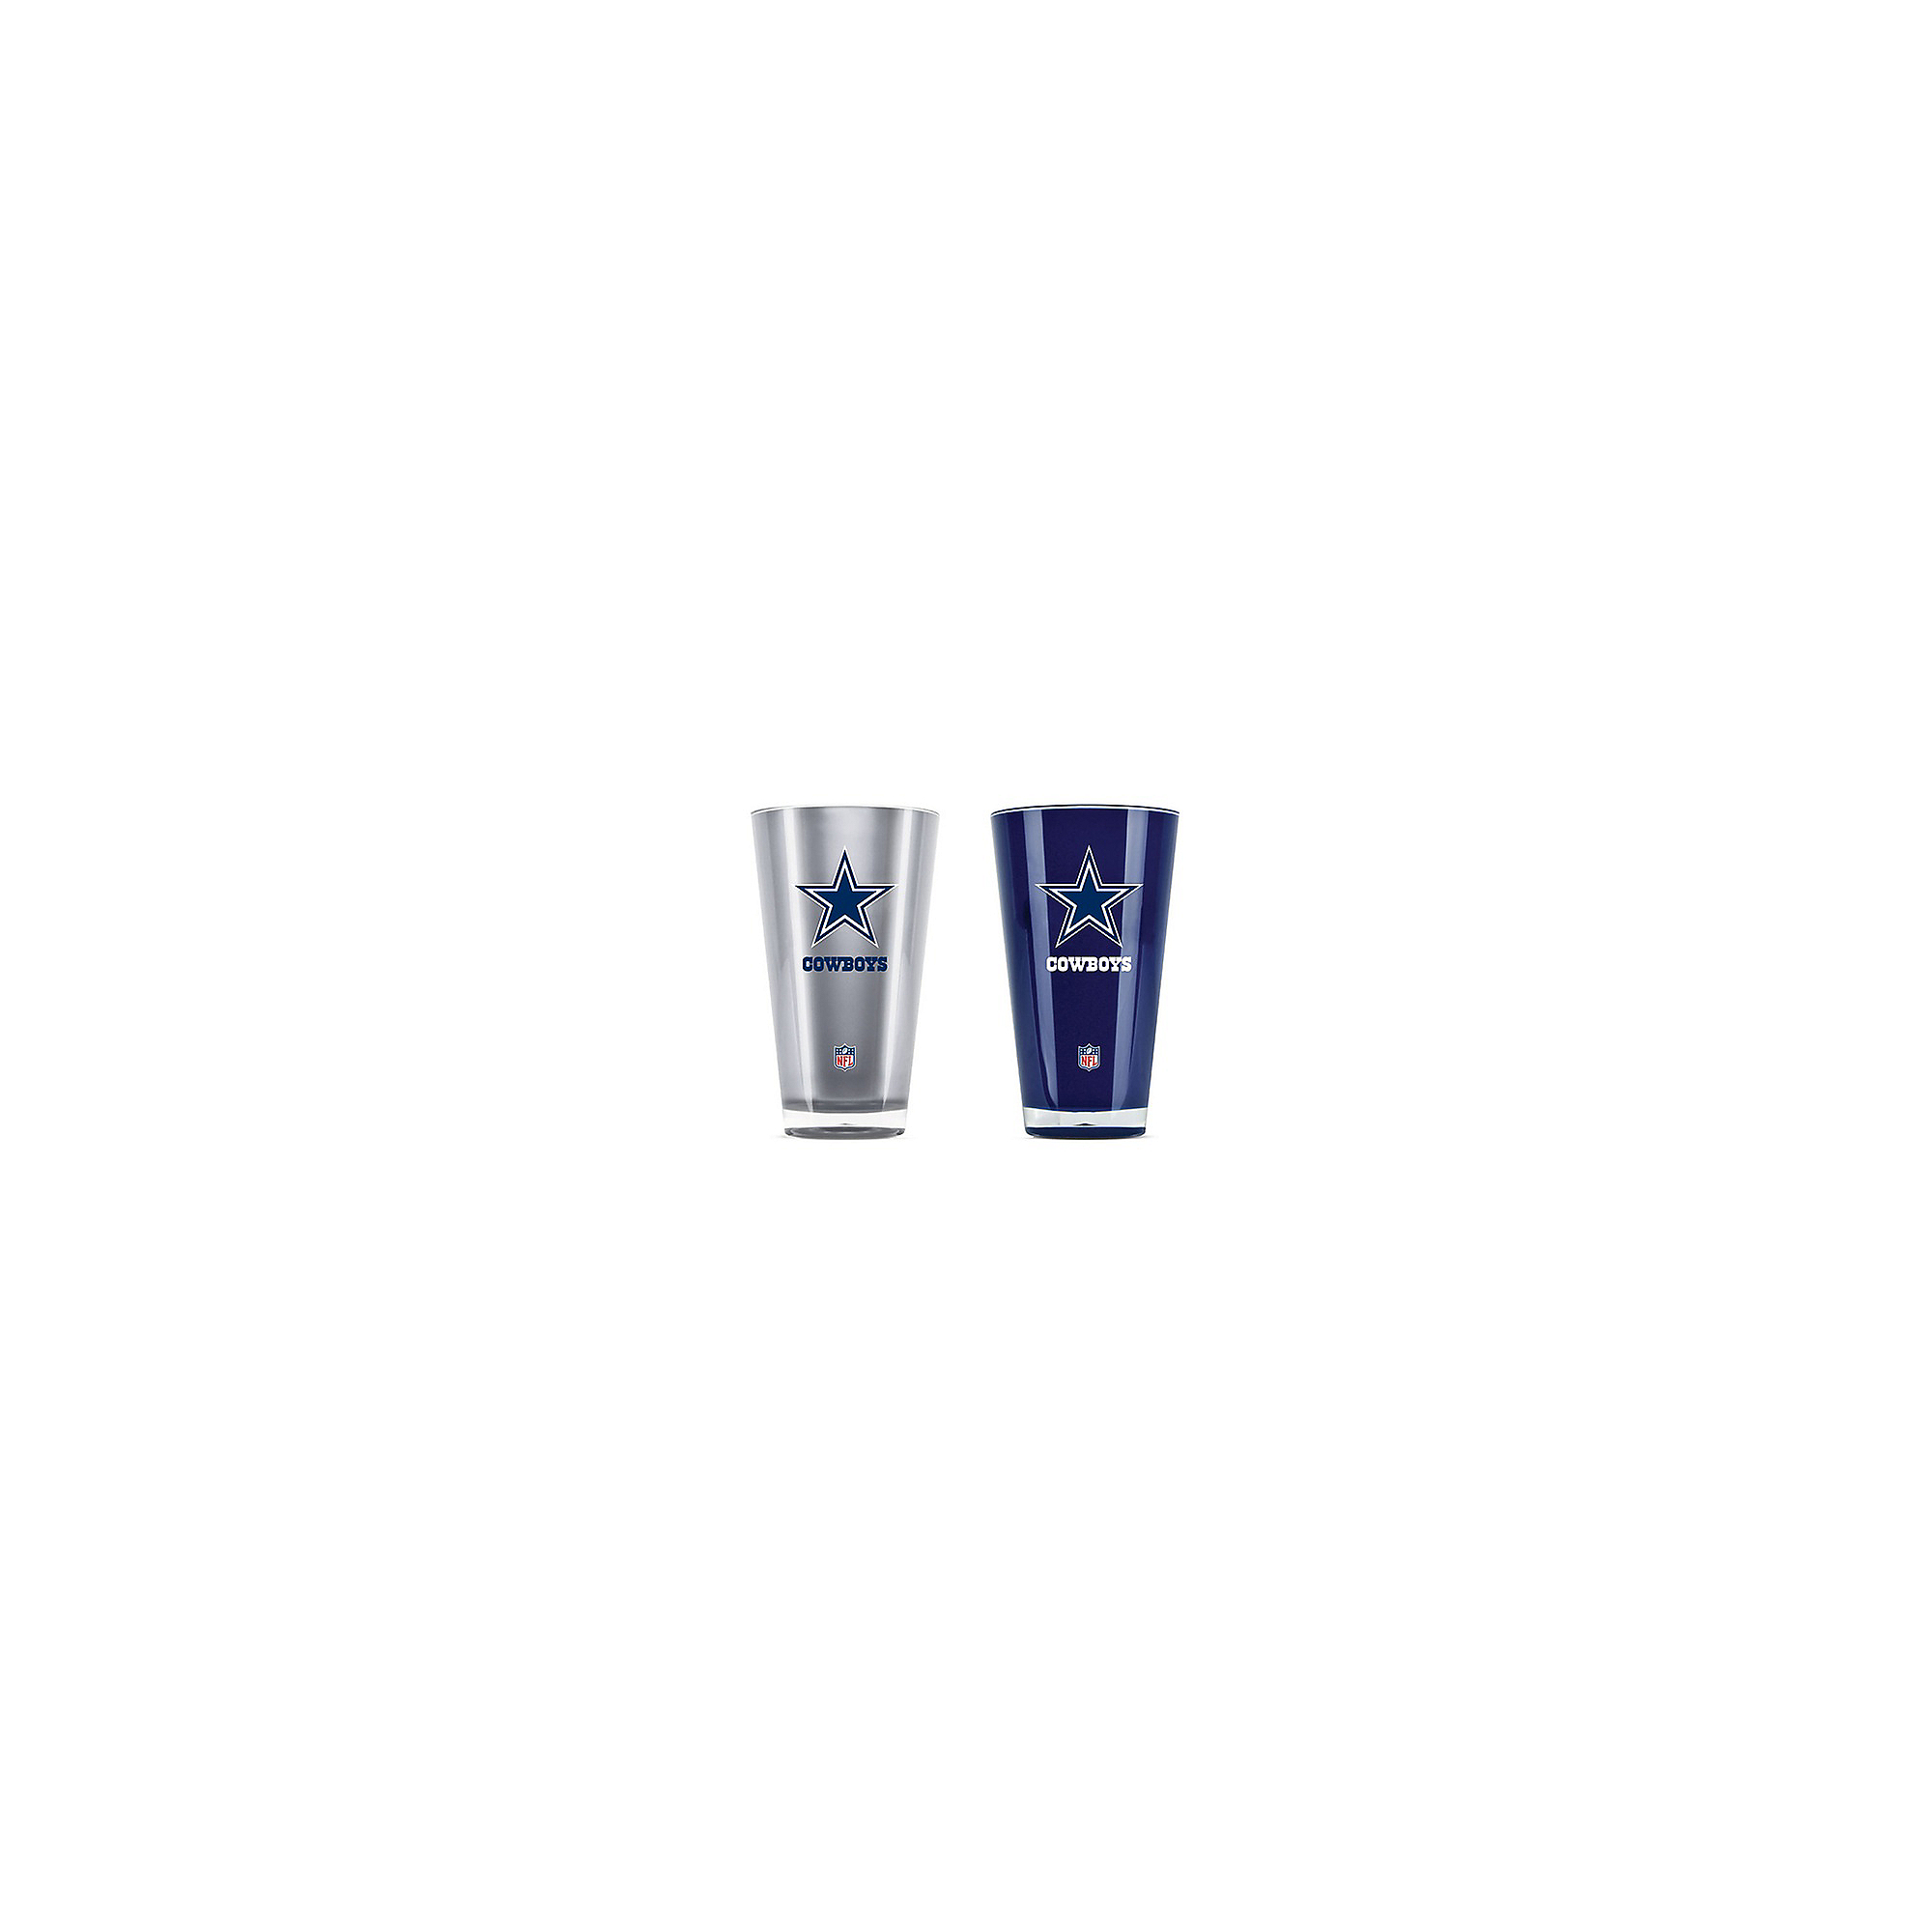 Dallas Cowboys 2-Pack 20 oz Tumbler Set